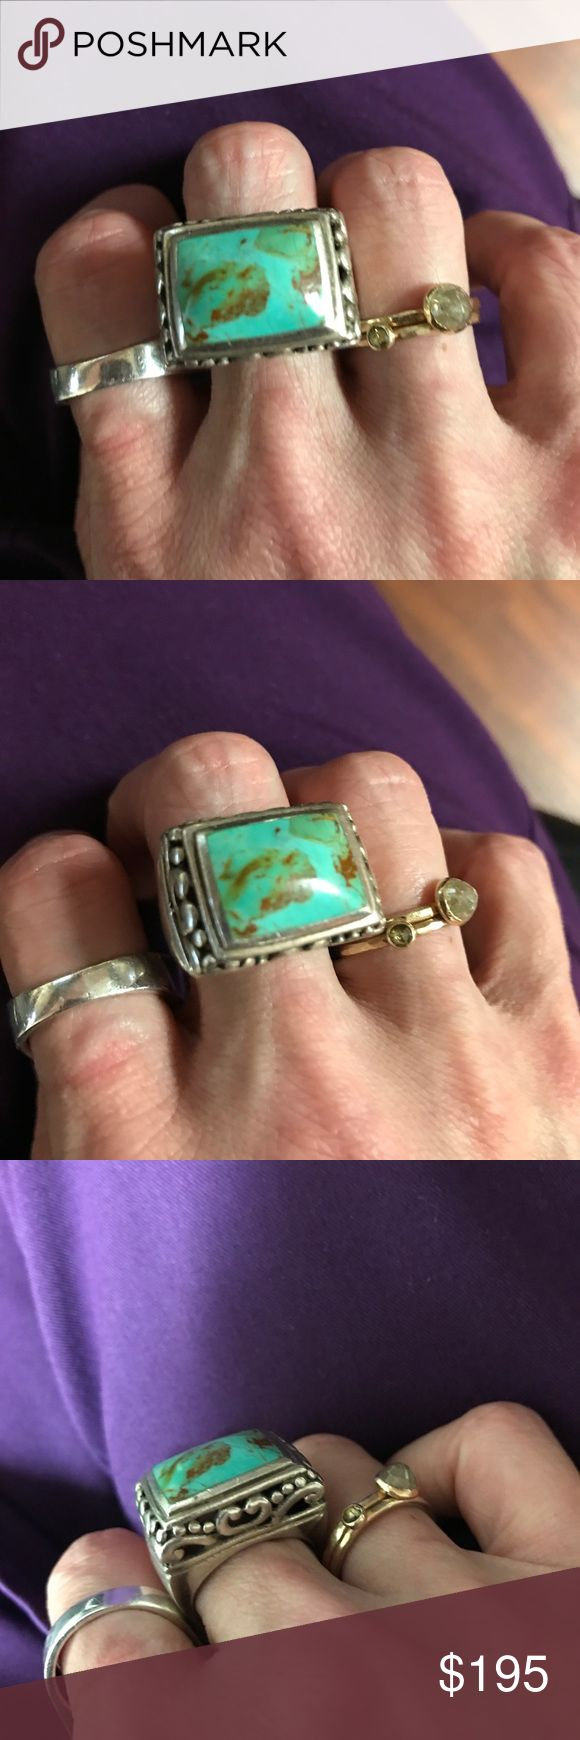 Huge Royston Turquoise Native American Silver Ring Huge Royston Turquoise Native American Silver Ring. Big and beefy. One of the largest pieces of royston I have seen in a ring. Lots of silver with nice scrollwork on the sides. Sadly, this doesn't fit me because my fingers are too small. Size 8. Great for a man's pinky ring! Accessories Jewelry